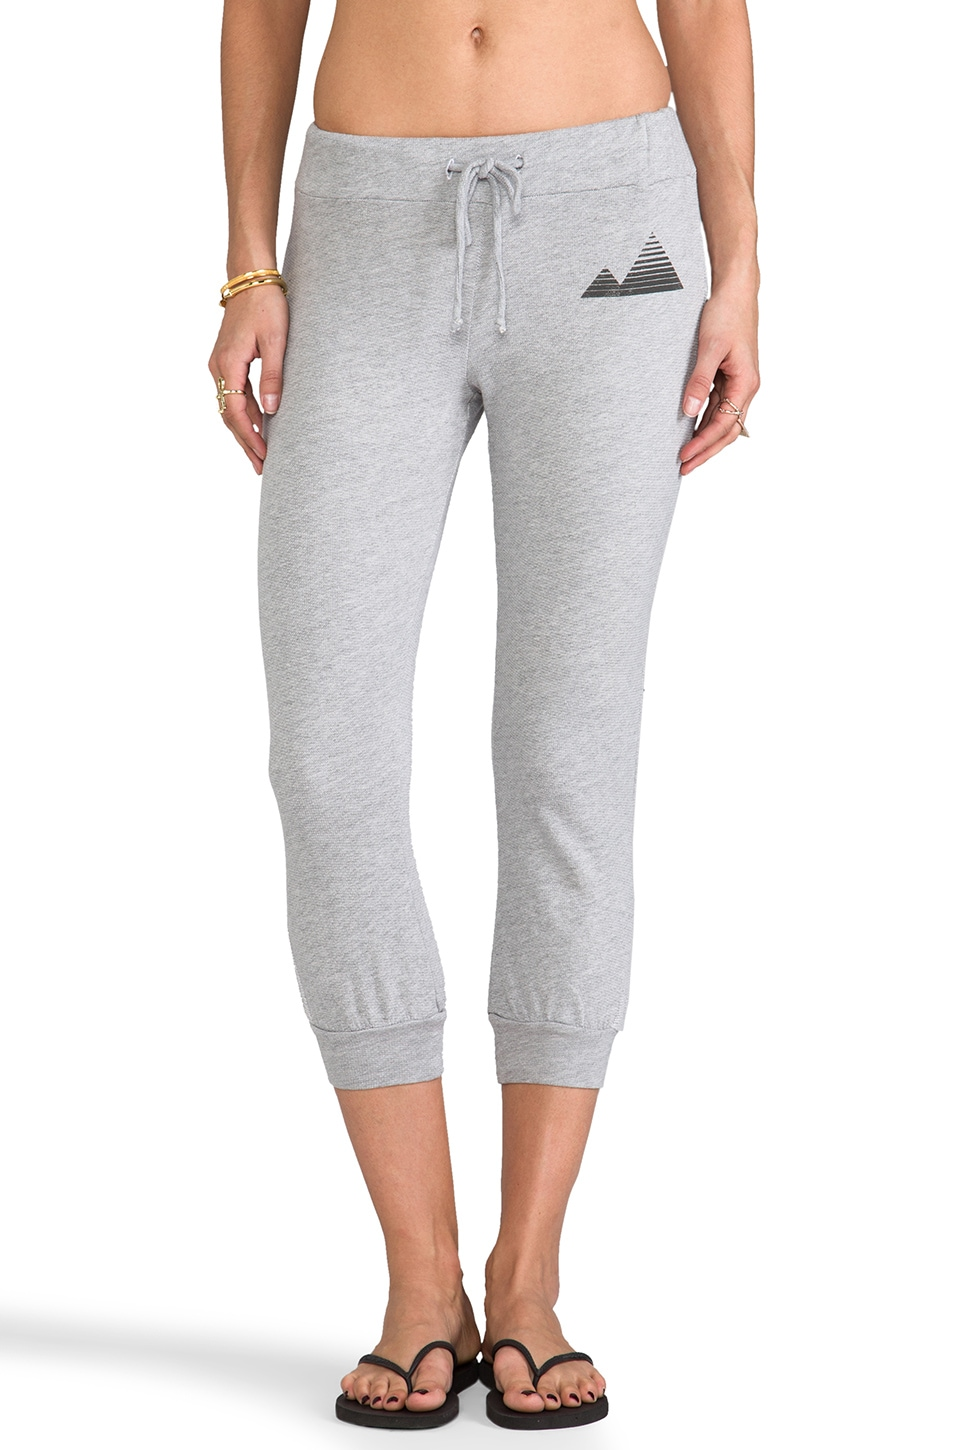 MY LINE Farren Sweats in Ash